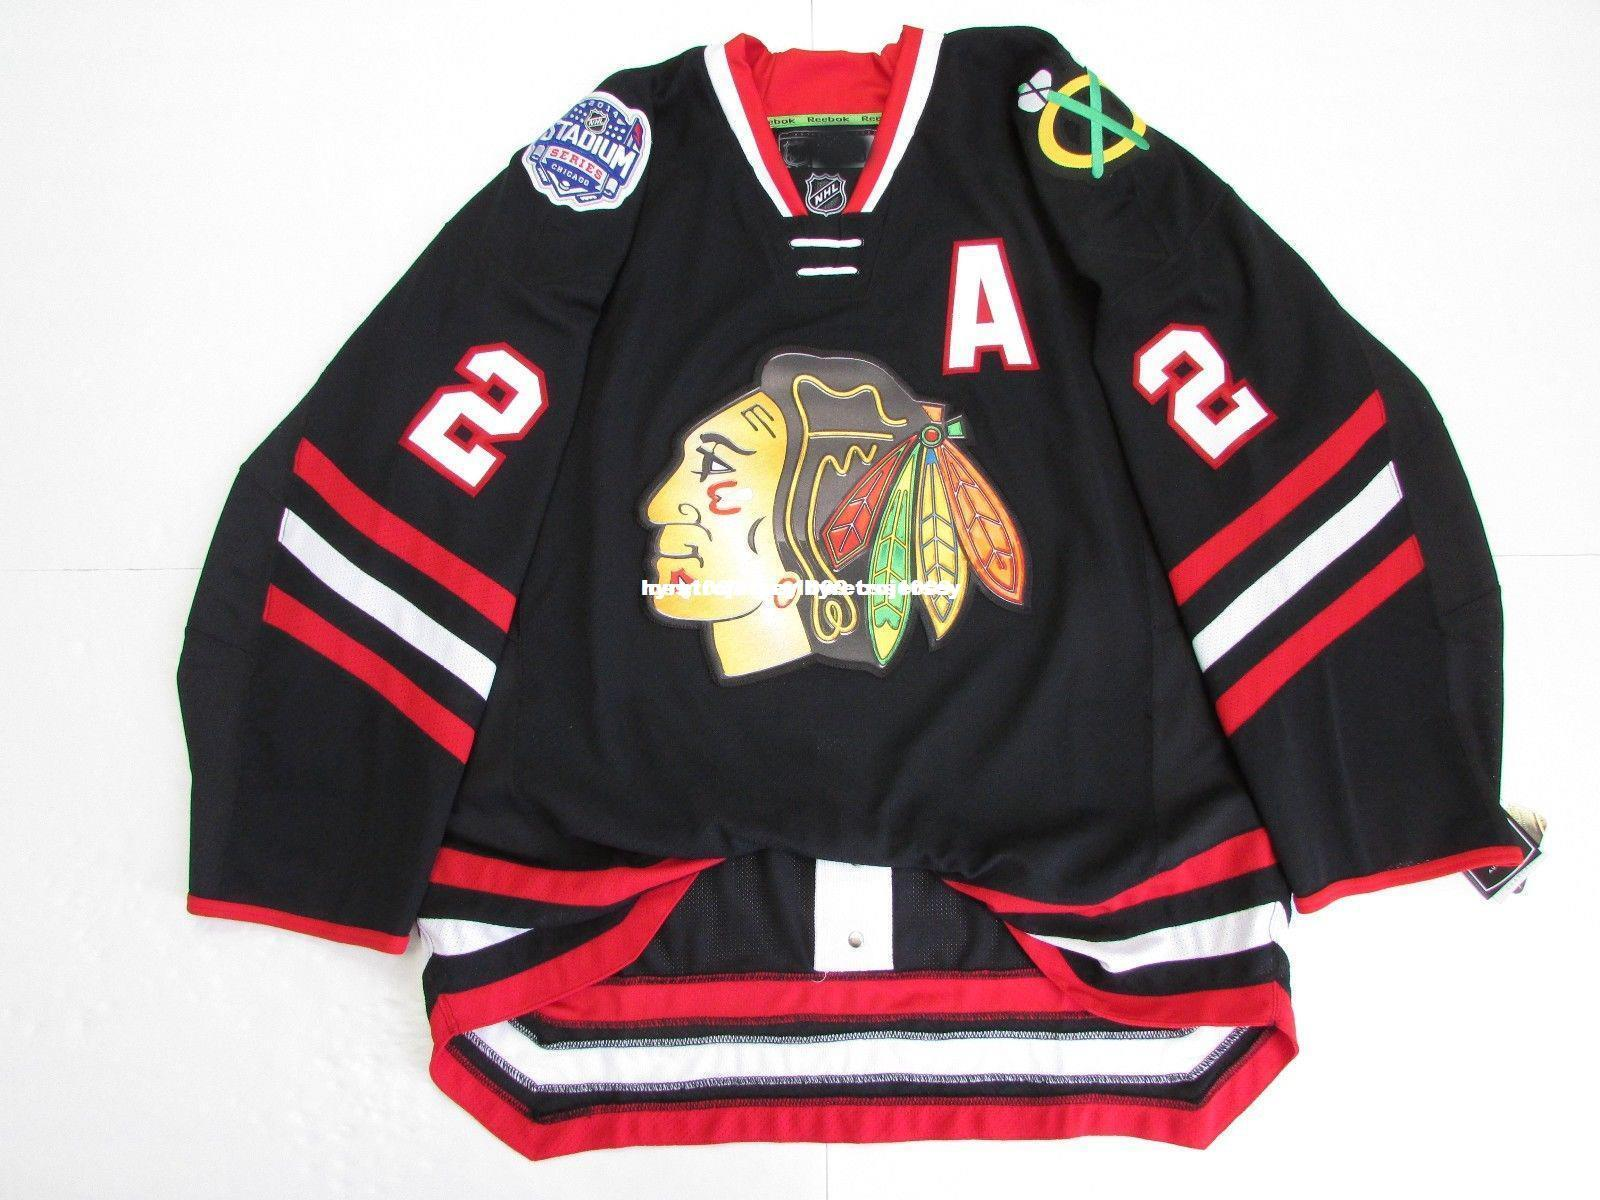 de3c2c97674 2019 Cheap Custom KEITH CHICAGO BLACKHAWKS 2014 STADIUM SERIES EDGE 2.0  JERSEY Stitch Add Any Number Any Name Mens Hockey Jersey GOALIE CUT 5XL  From ...